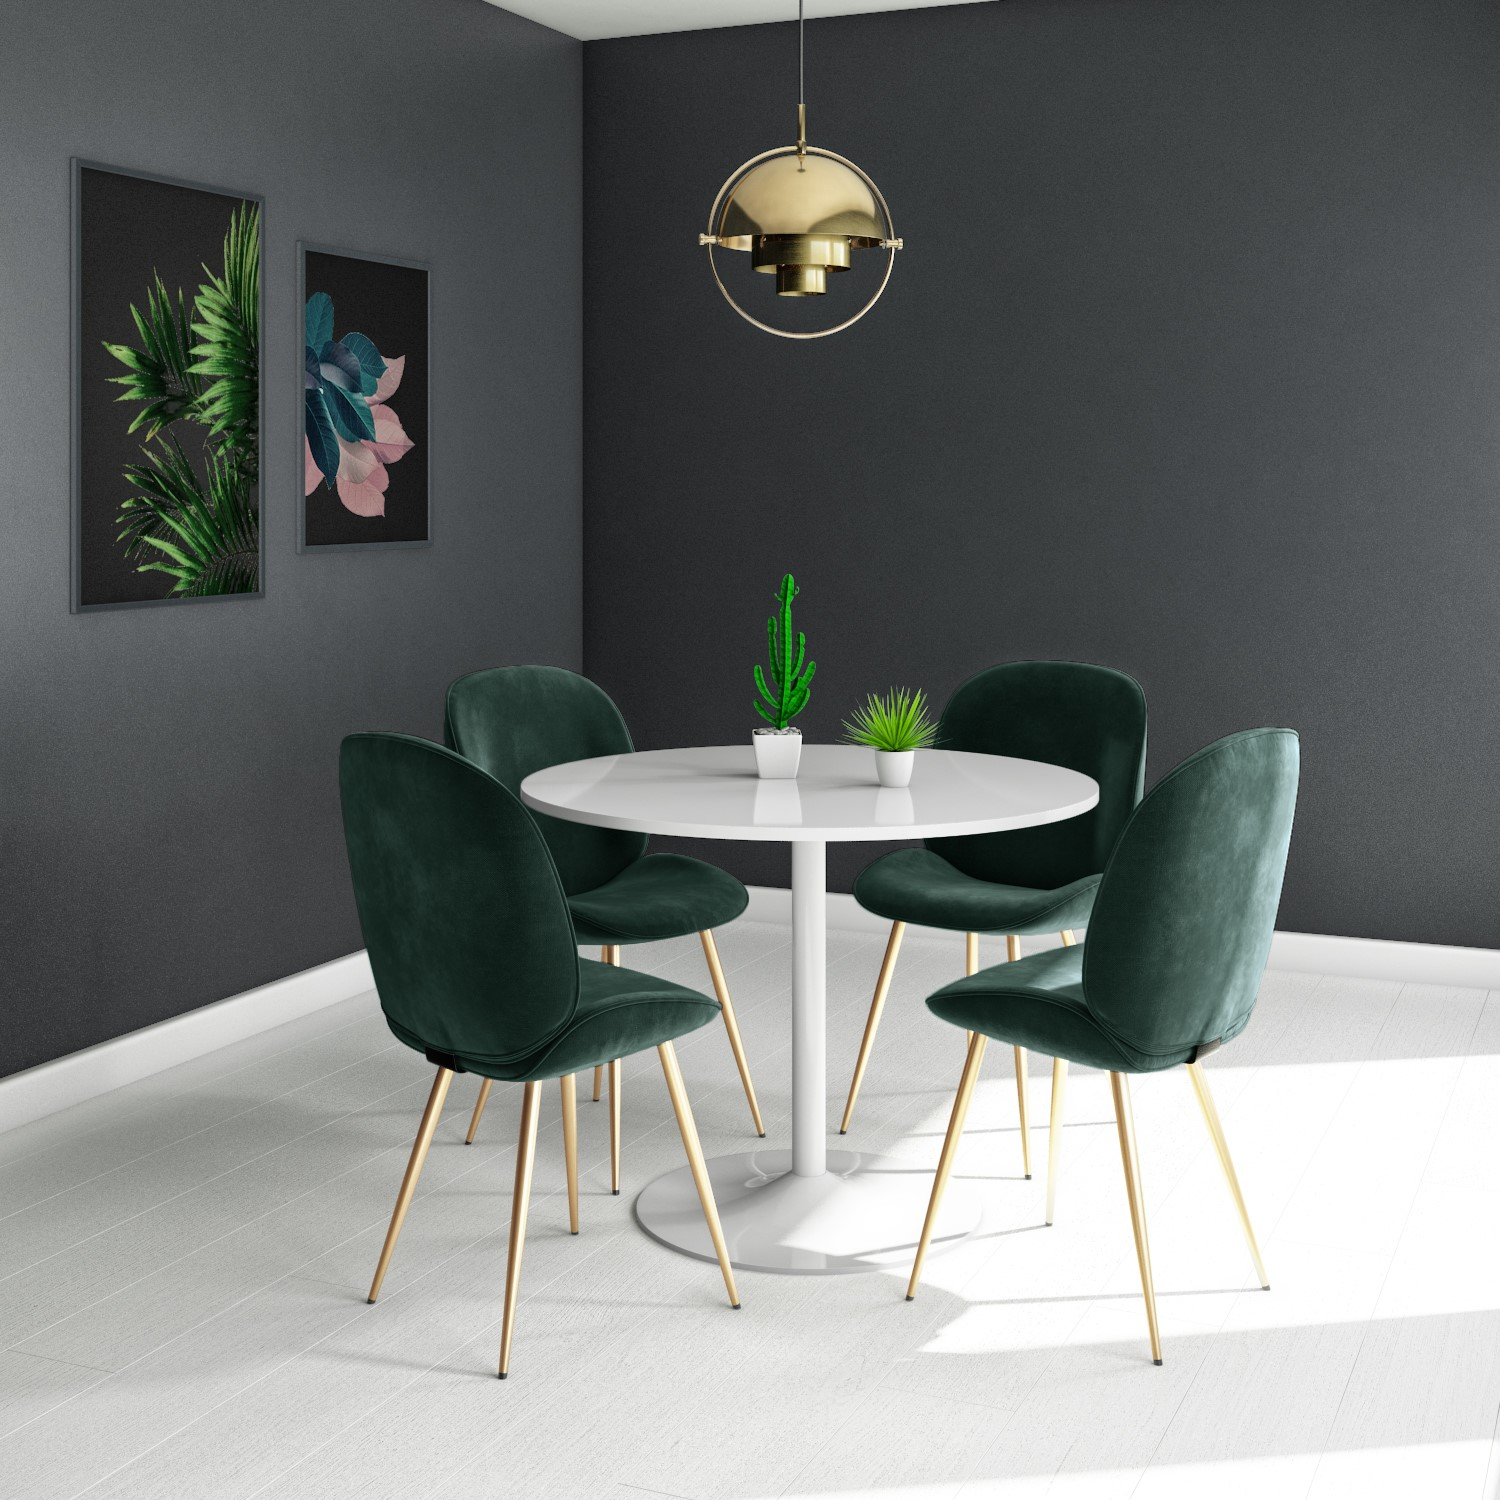 Picture of: Set Of 2 Dark Green Velvet Dining Chairs With Gold Legs Jenna Furniture123